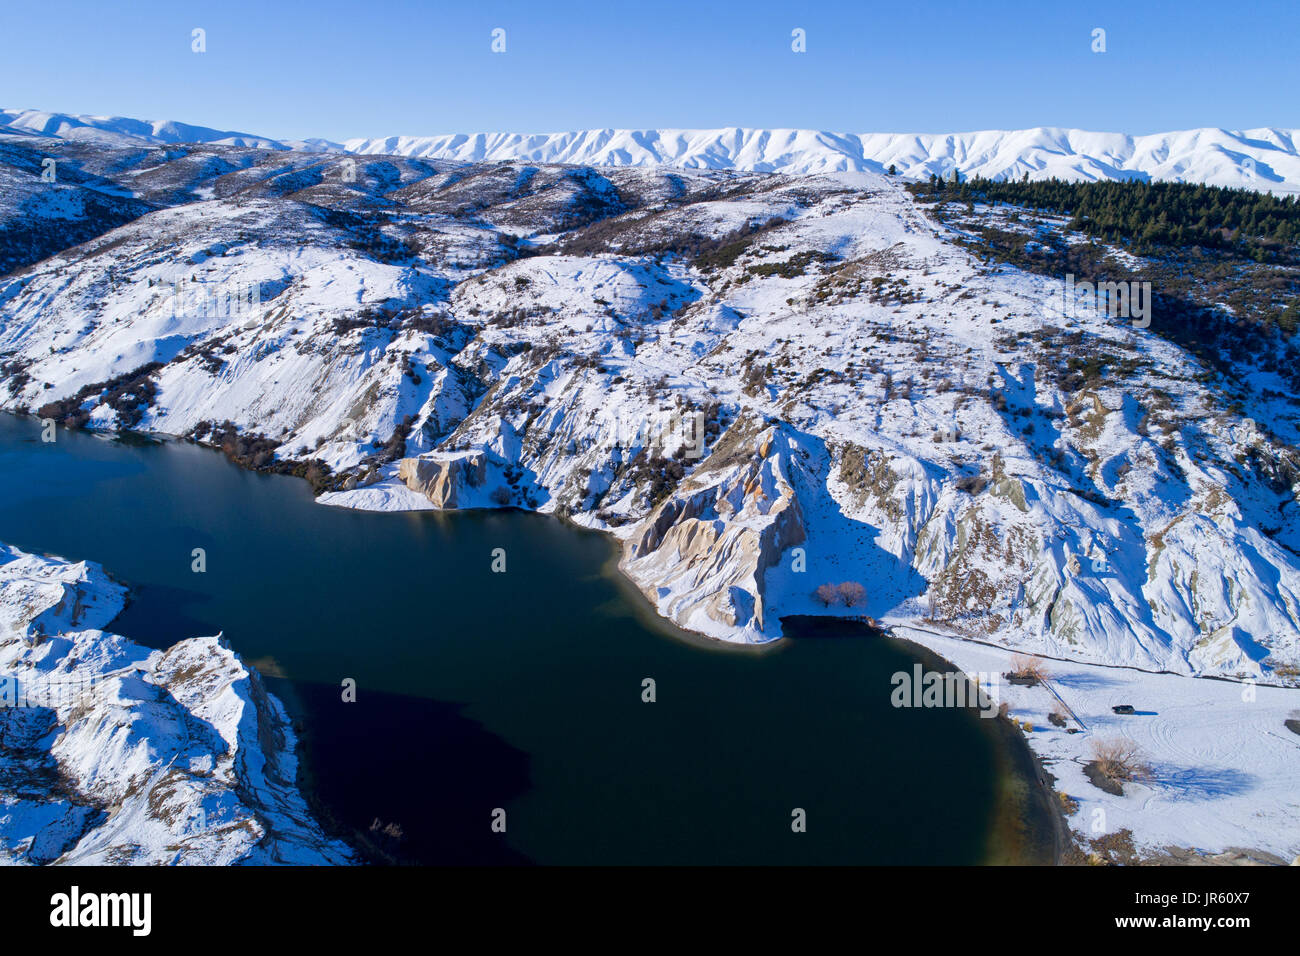 Snow around Blue Lake, St Bathans, and Hawkdun Range, Maniototo, Central Otago, South Island, New Zealand - drone aerial - Stock Image